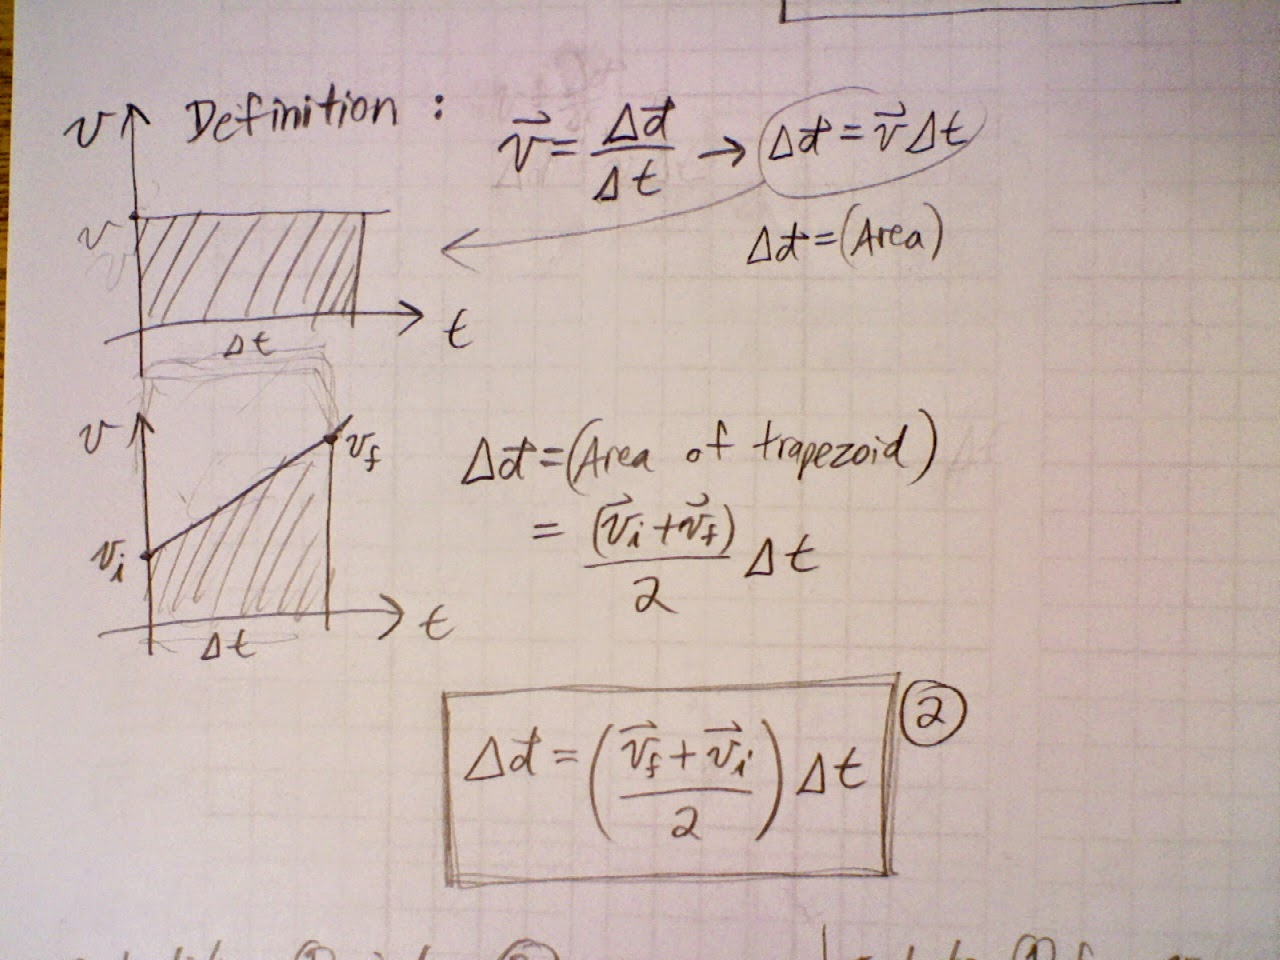 grade 11 physics Cbse sample papers model papers guess papers download cbse sample papers for free  cbse sample papers for class-11 model question papers for cbse class 11 physics, chemistry, maths, biology, accountancy, economics, b study, comp sc and other subjects with marking scheme and latest cbse blue print are available for.